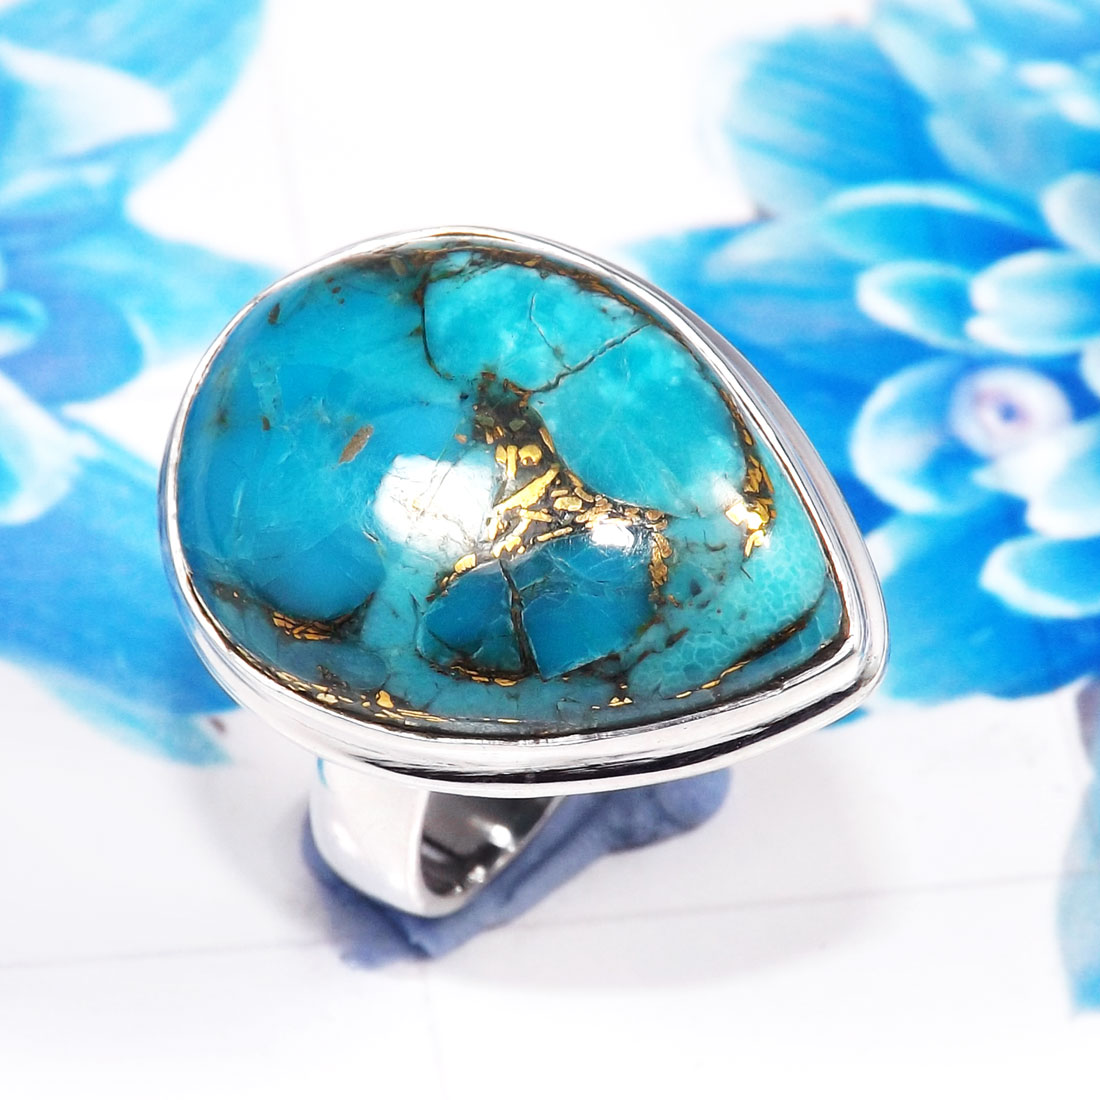 vintage tibetan silver rings party animal turquoise products ring stone jewelry turtle sea natural